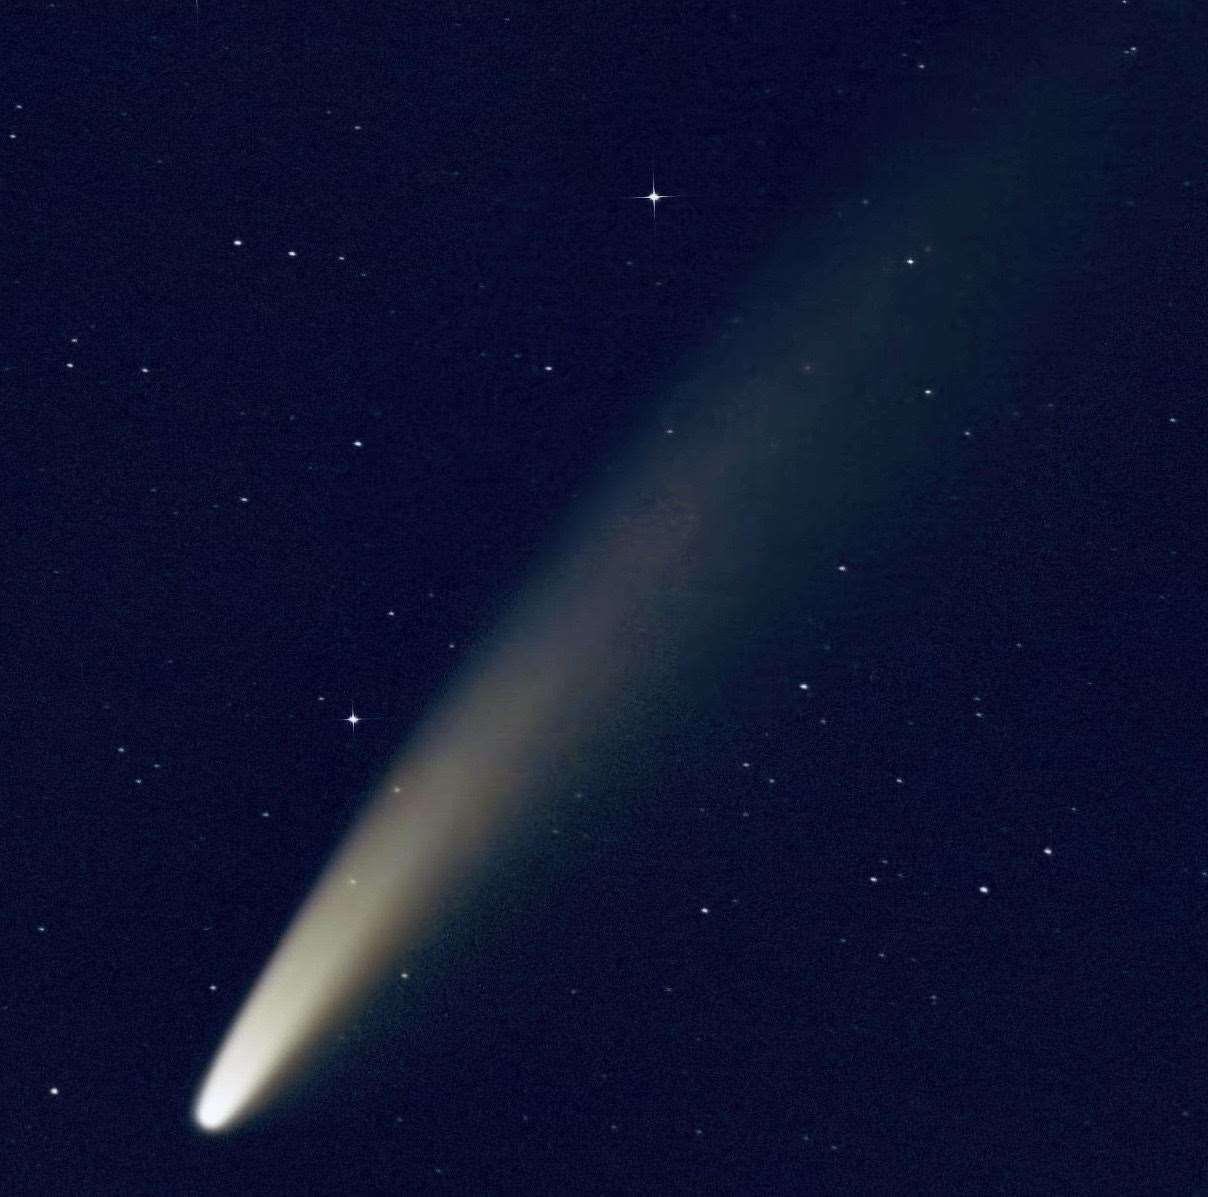 Comet NEOWISE Brightens the Night in Stunning Space Station Video